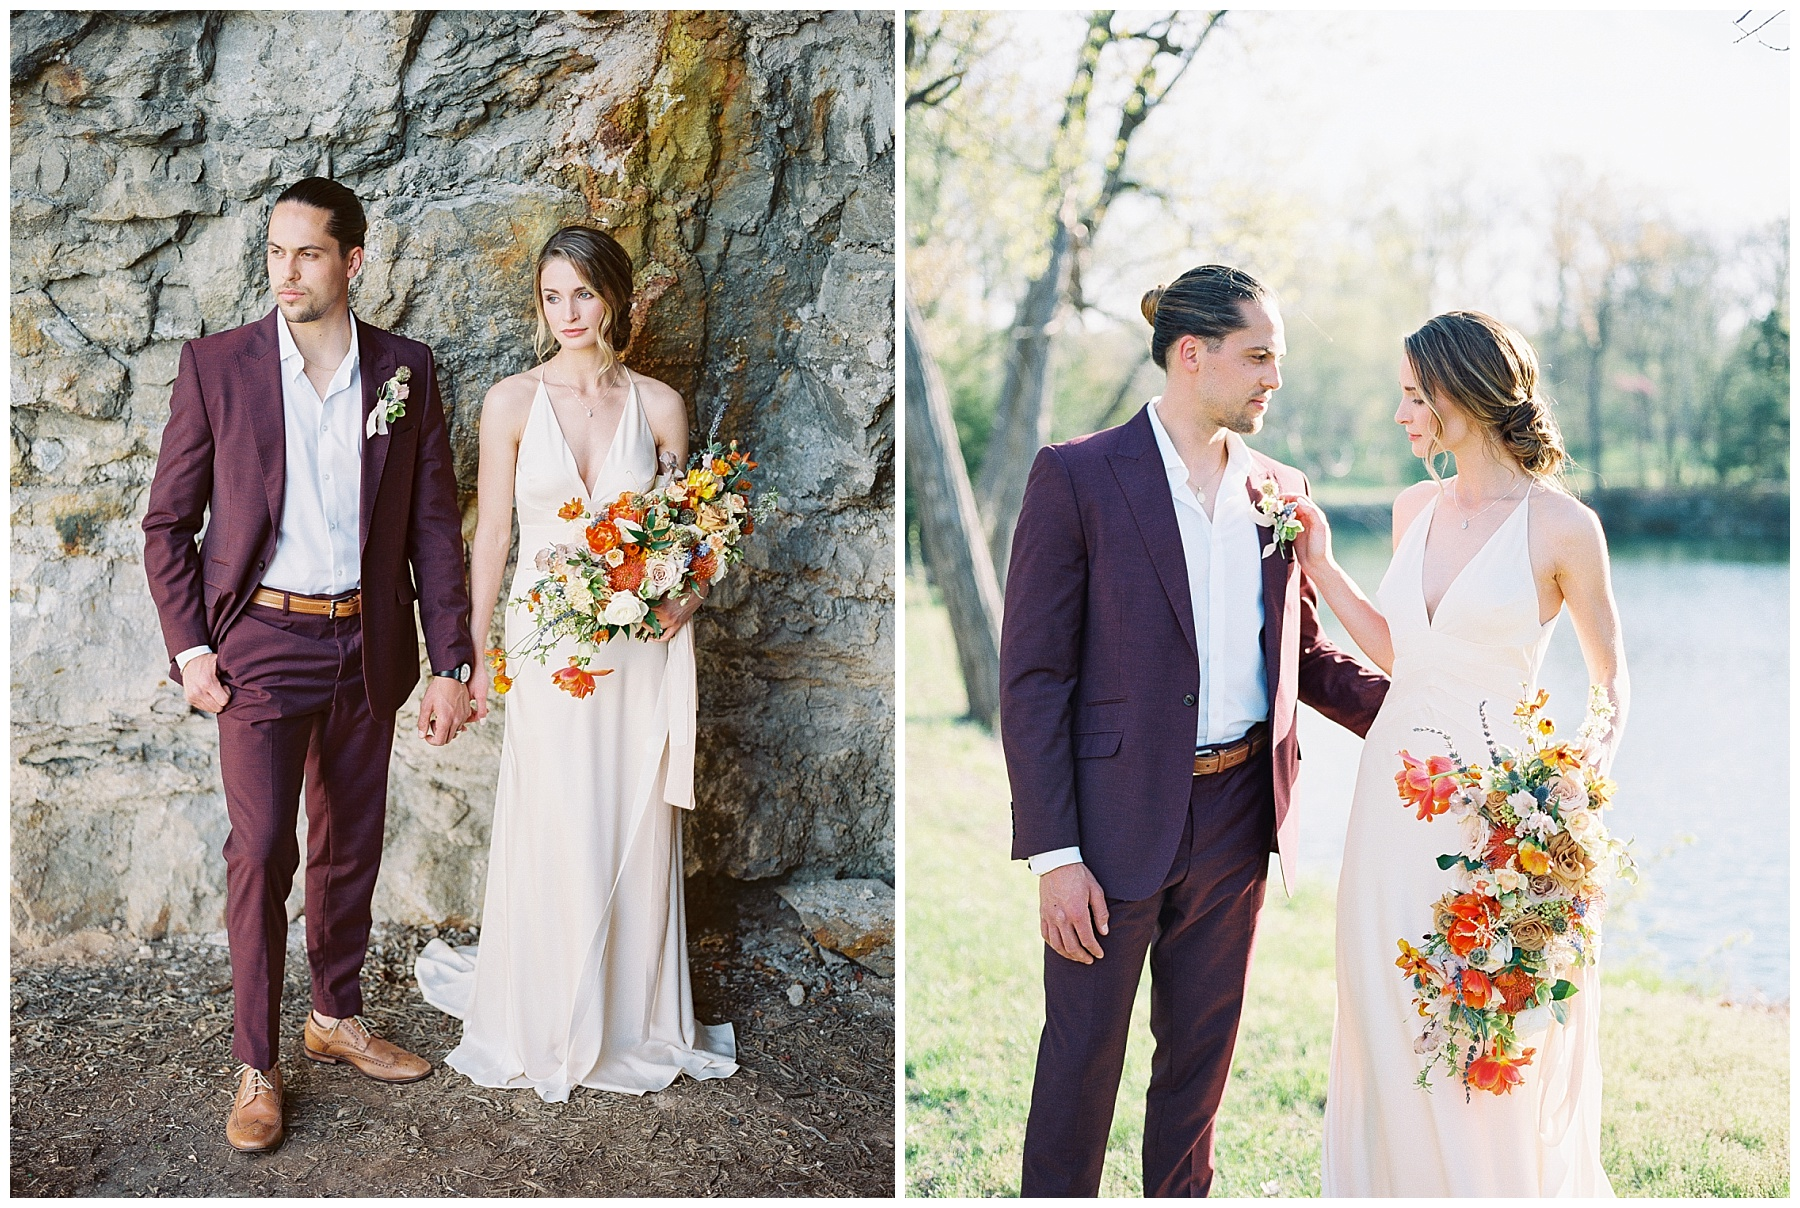 Intimate Spanish and French Inspired Destination Wedding with Lakeside Dinner Party at Dusk at Wildcliff by Kelsi Kliethermes Photography Best Missouri and Maui Wedding Photographer_0047.jpg